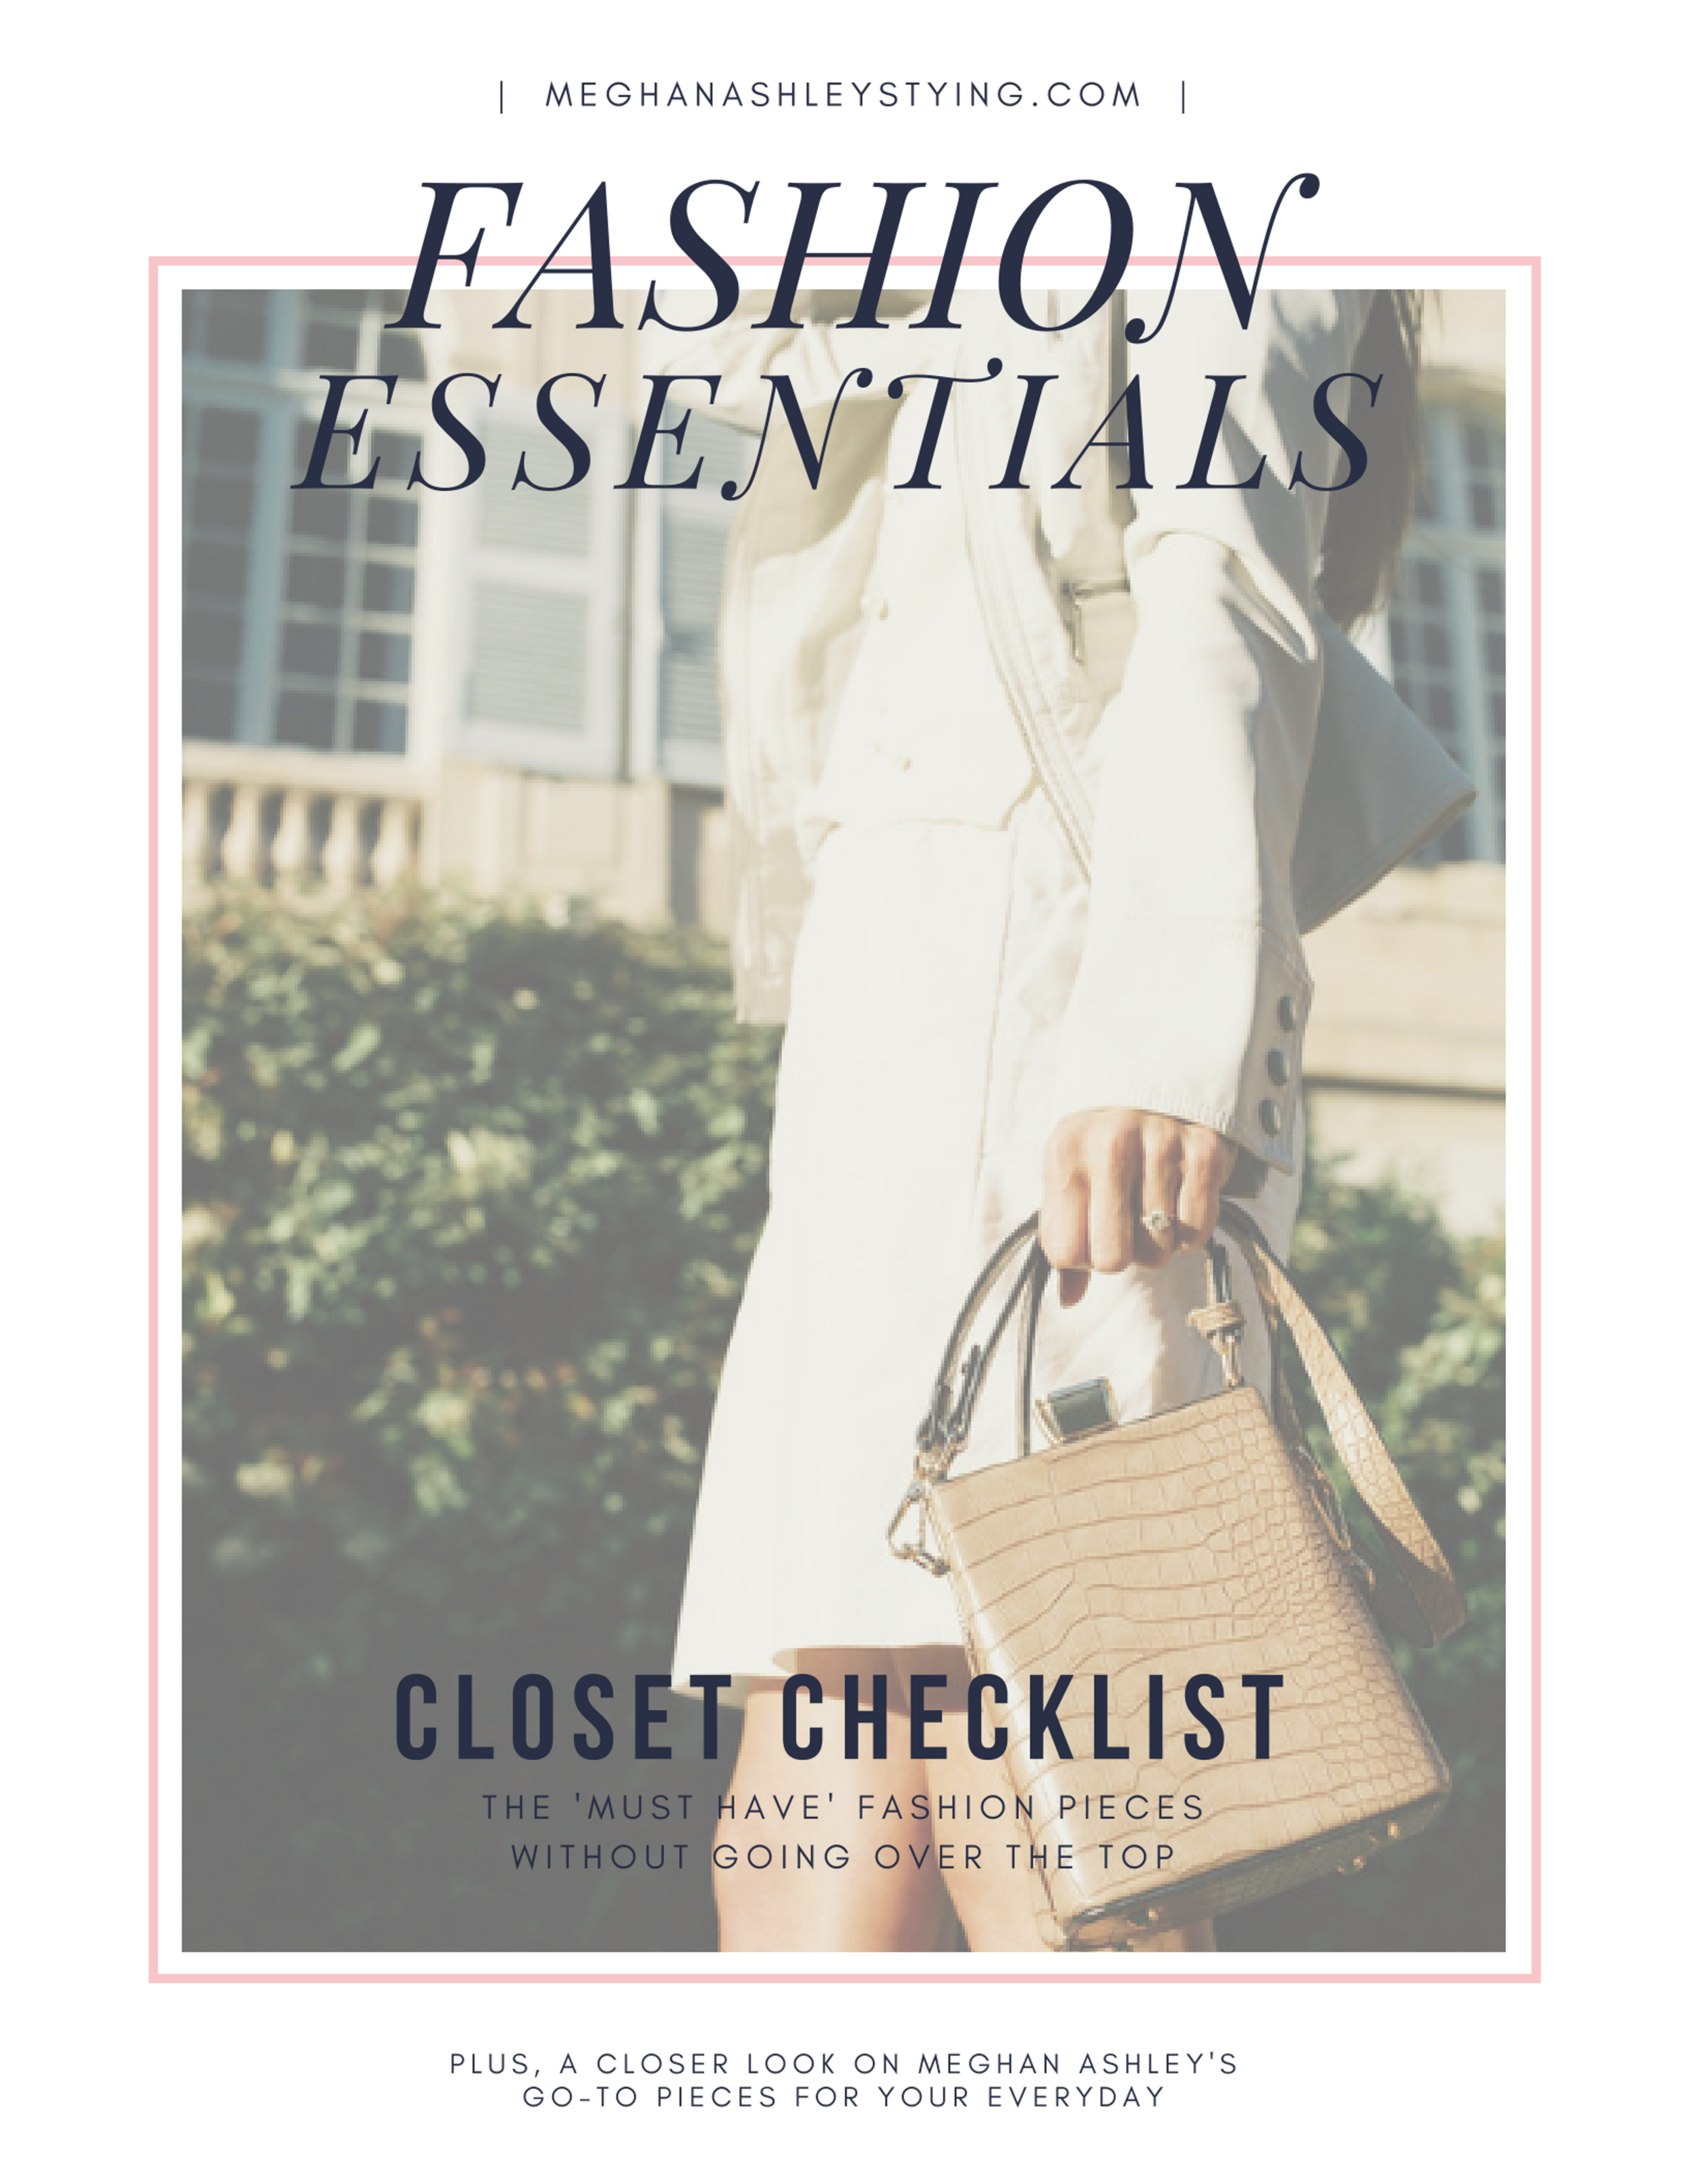 Your Closet CheckList  Guide - Hi, I am so delighted to give you this closet essentials guide - designed especially for Catholic women.